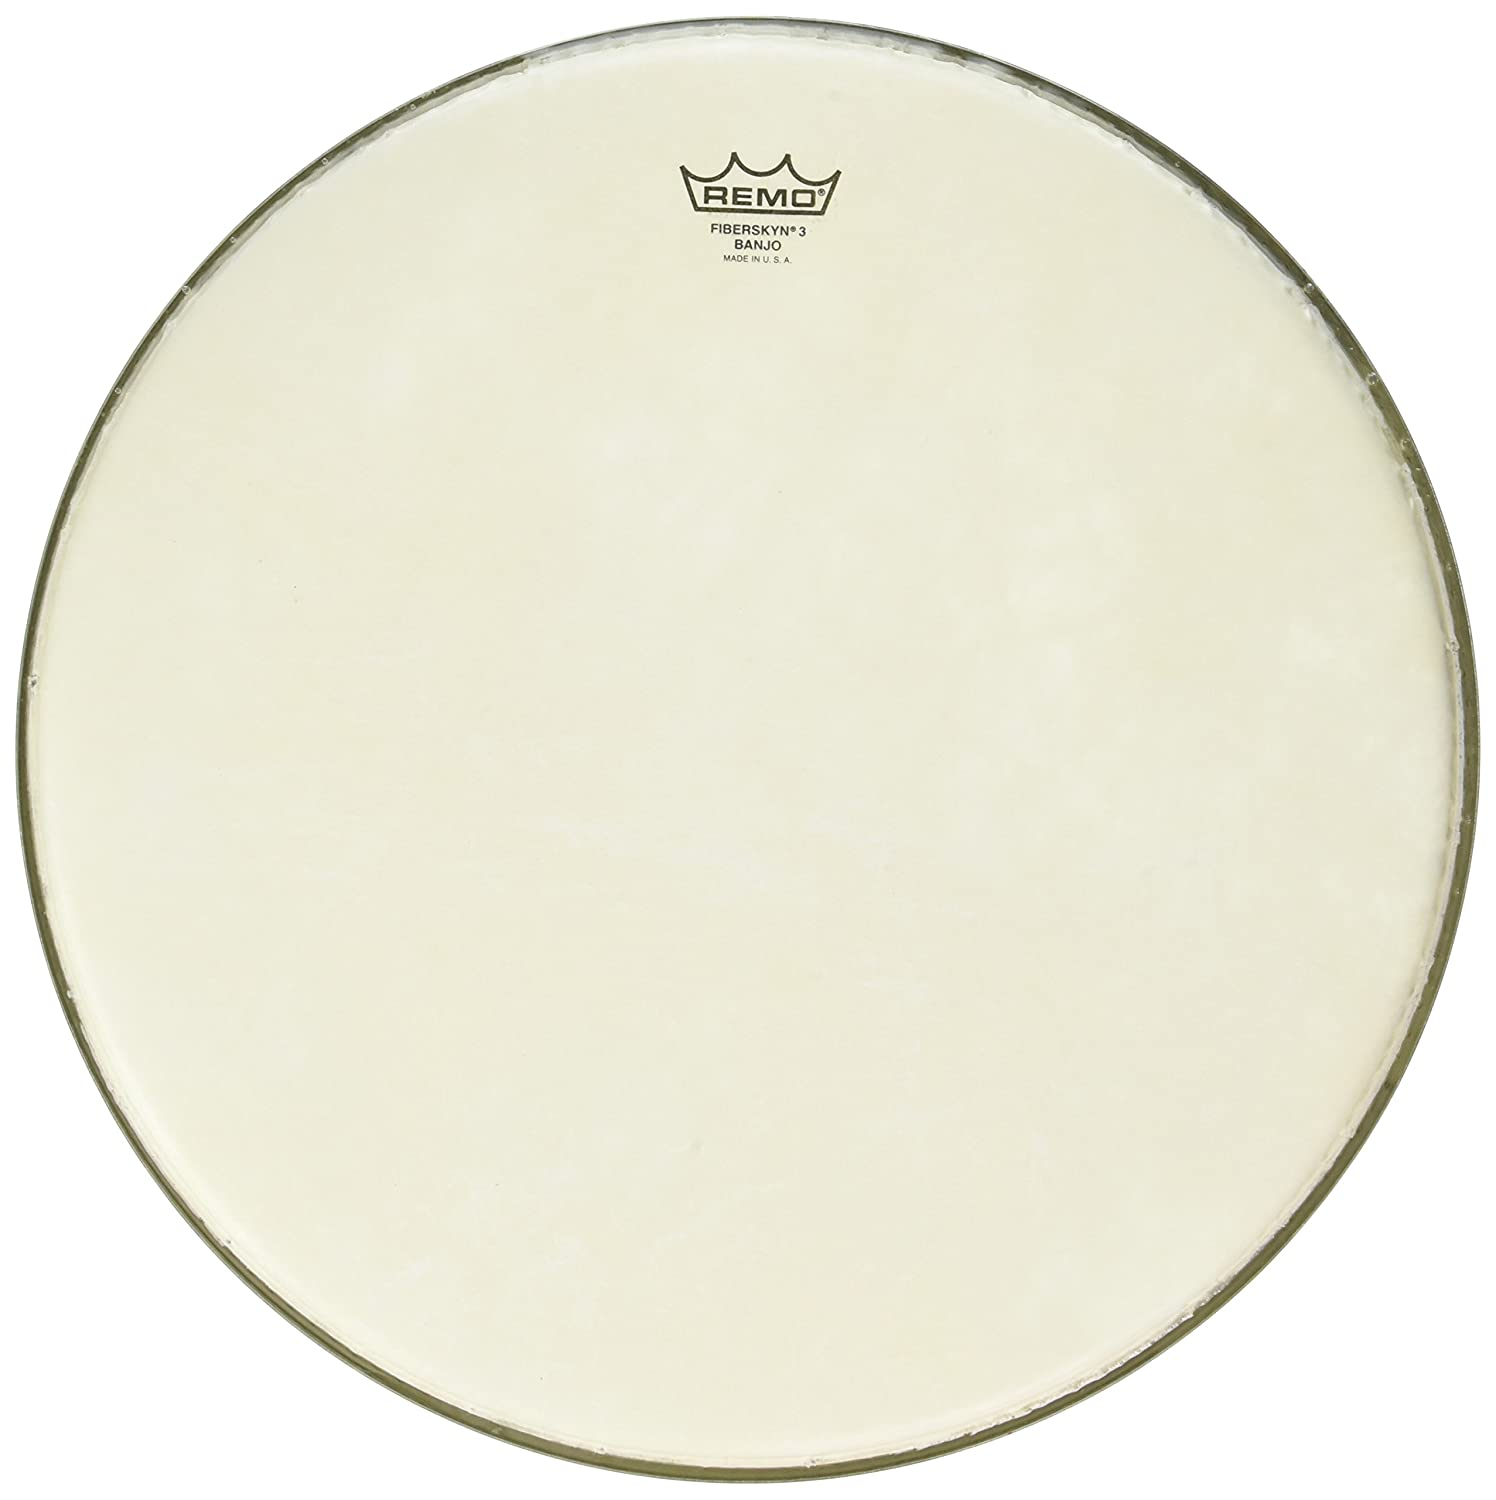 Remo Drumhead Pack (BJ-1100-M5) KMC Music Inc